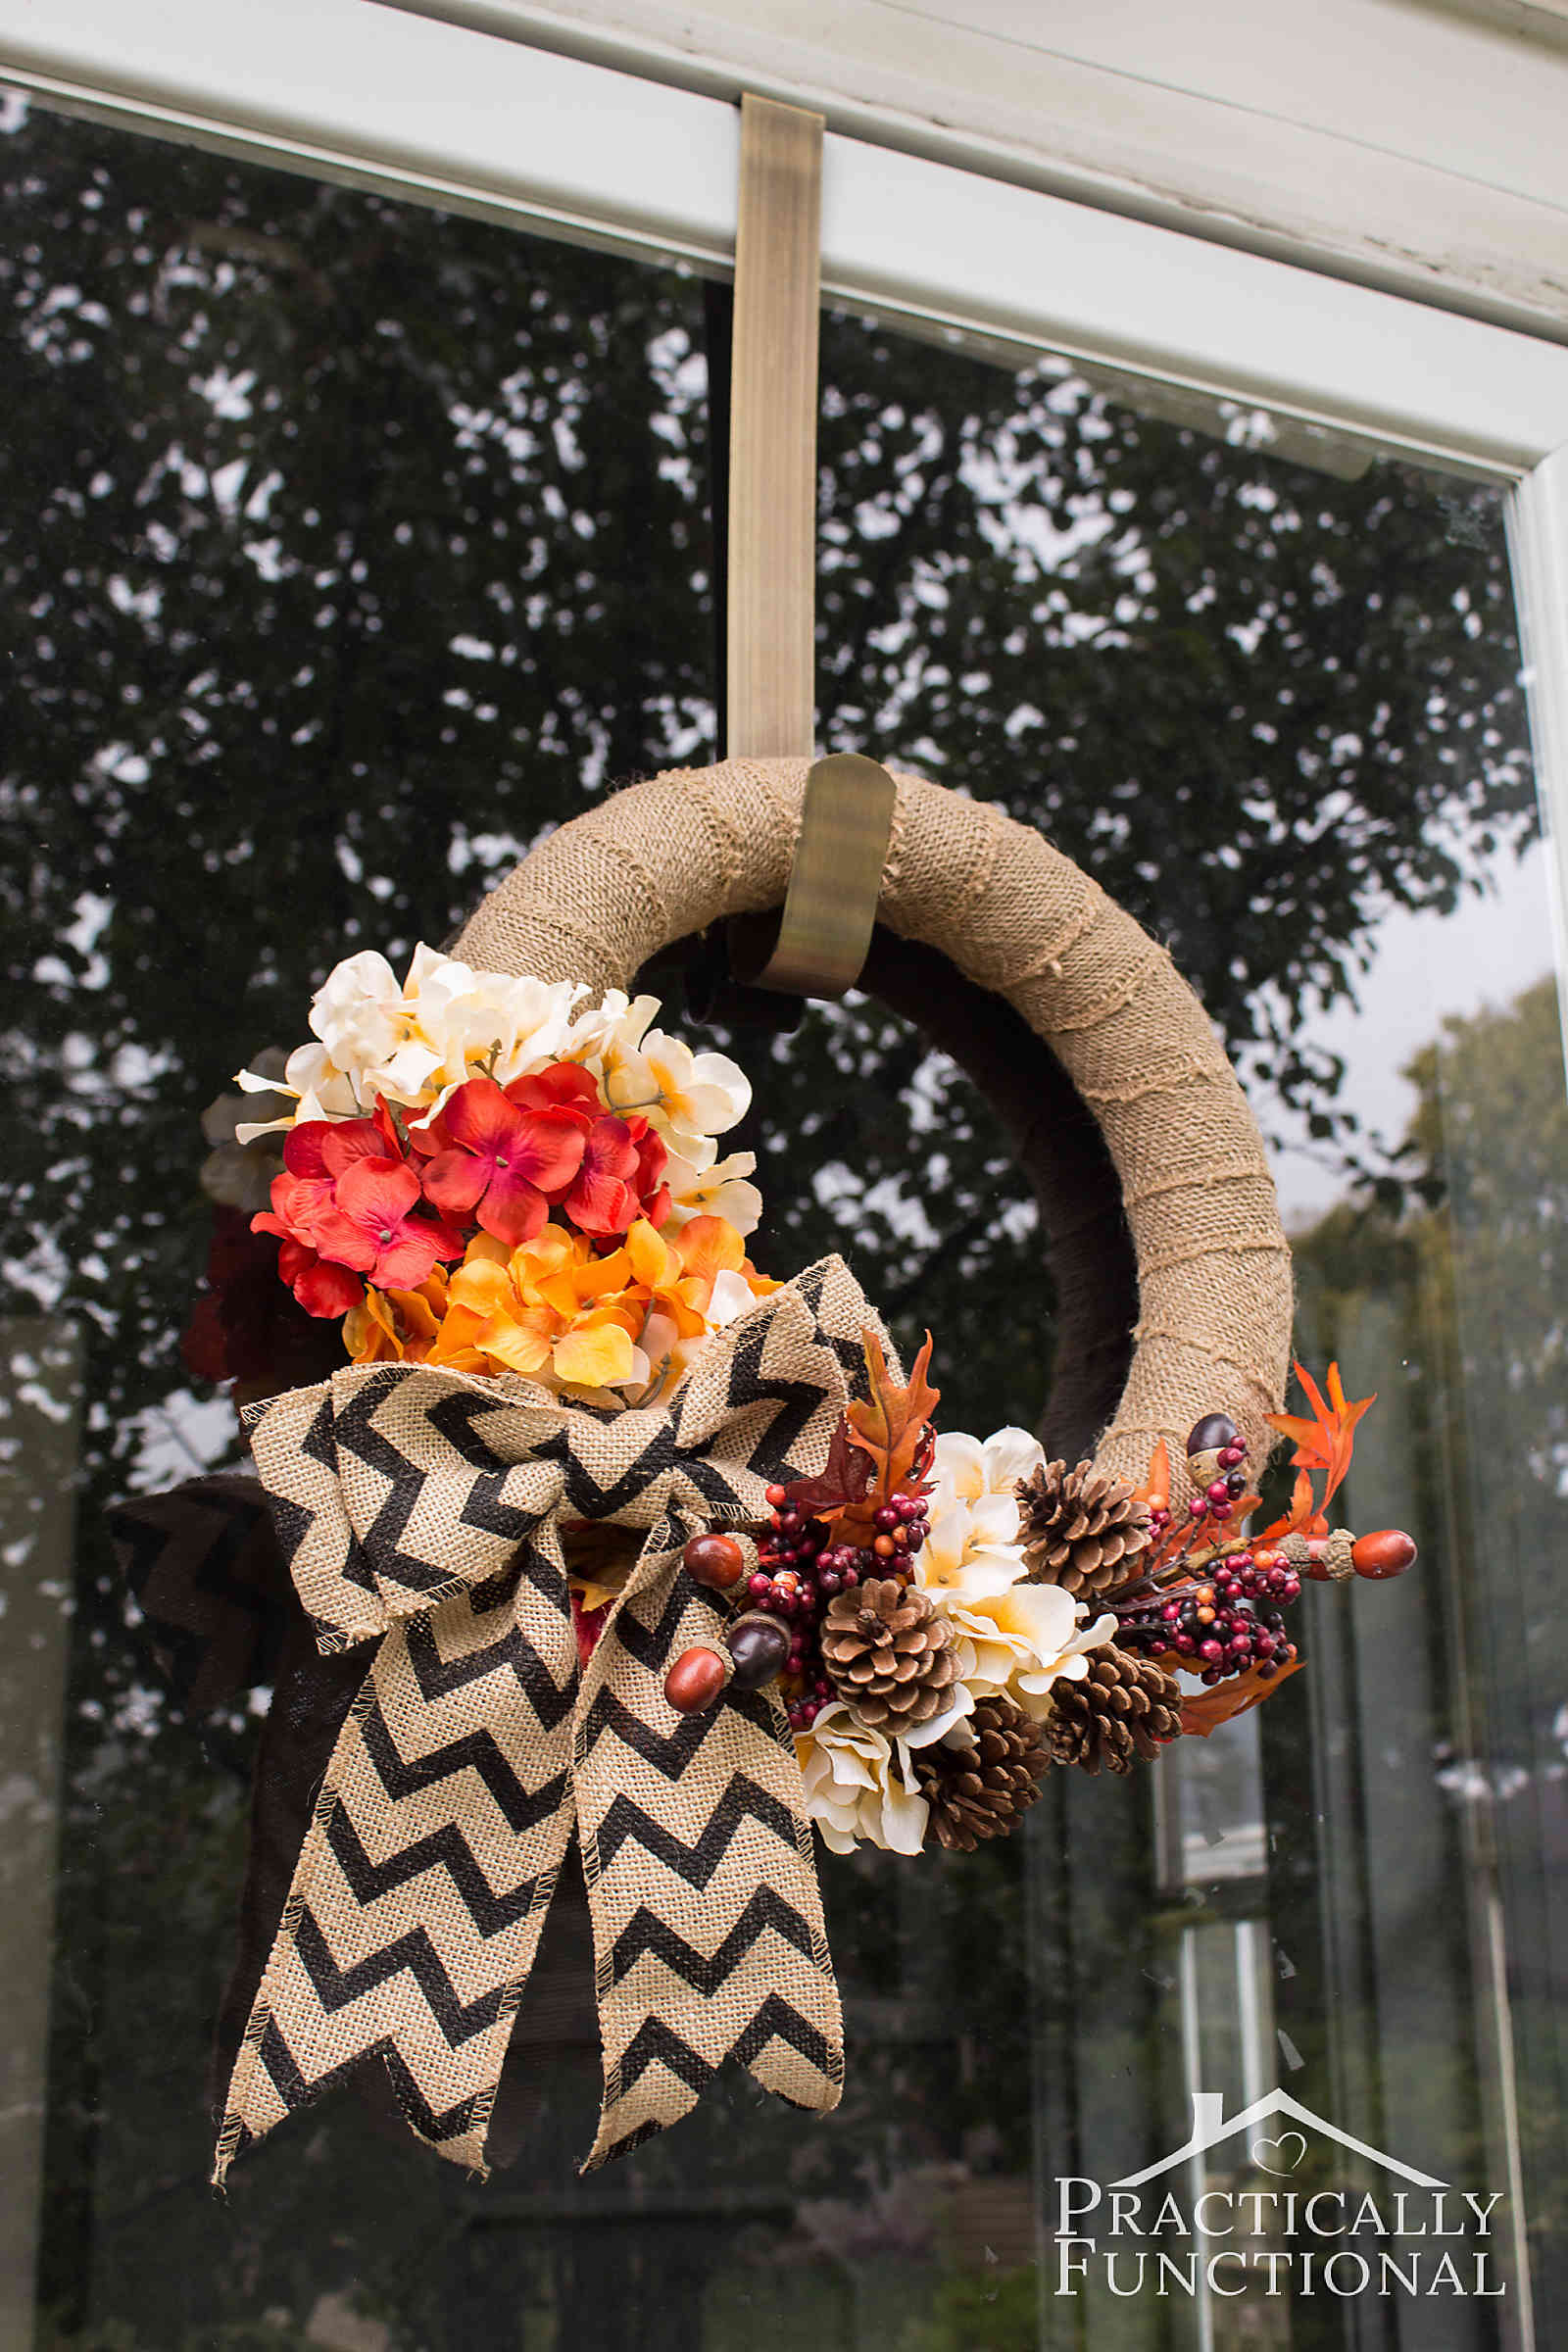 Simple Diy Burlap Wreath With Fall Flowers Practically Functional